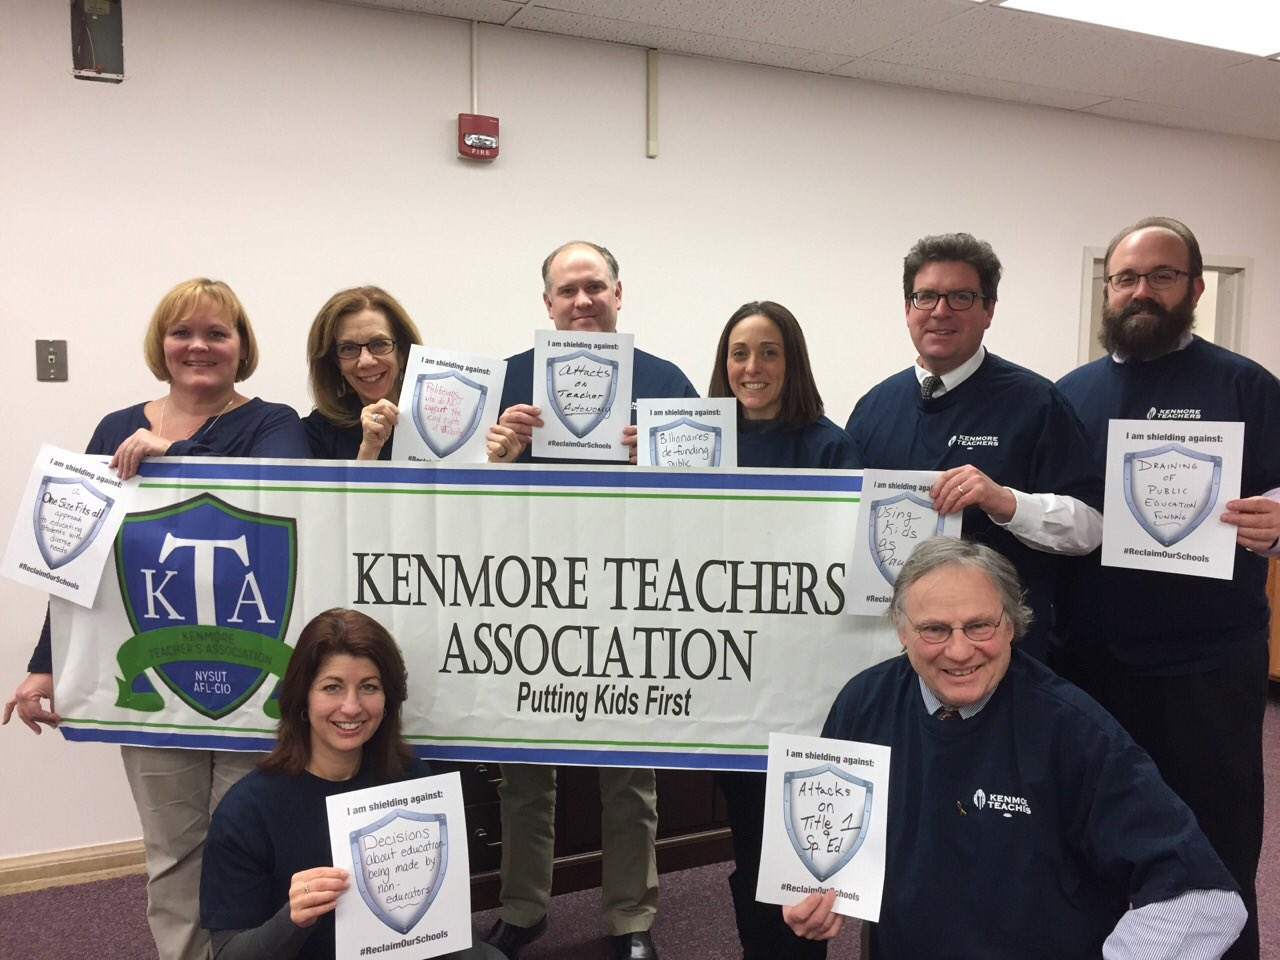 KTA Executive Board prepping 4 Jan 19 #DayofAction #ReclaimOurSchools #DumpDevos #NotMySOE  @nysut @campaignconrad @lilbird77 @shuflinoff https://t.co/lCLuJysAyE